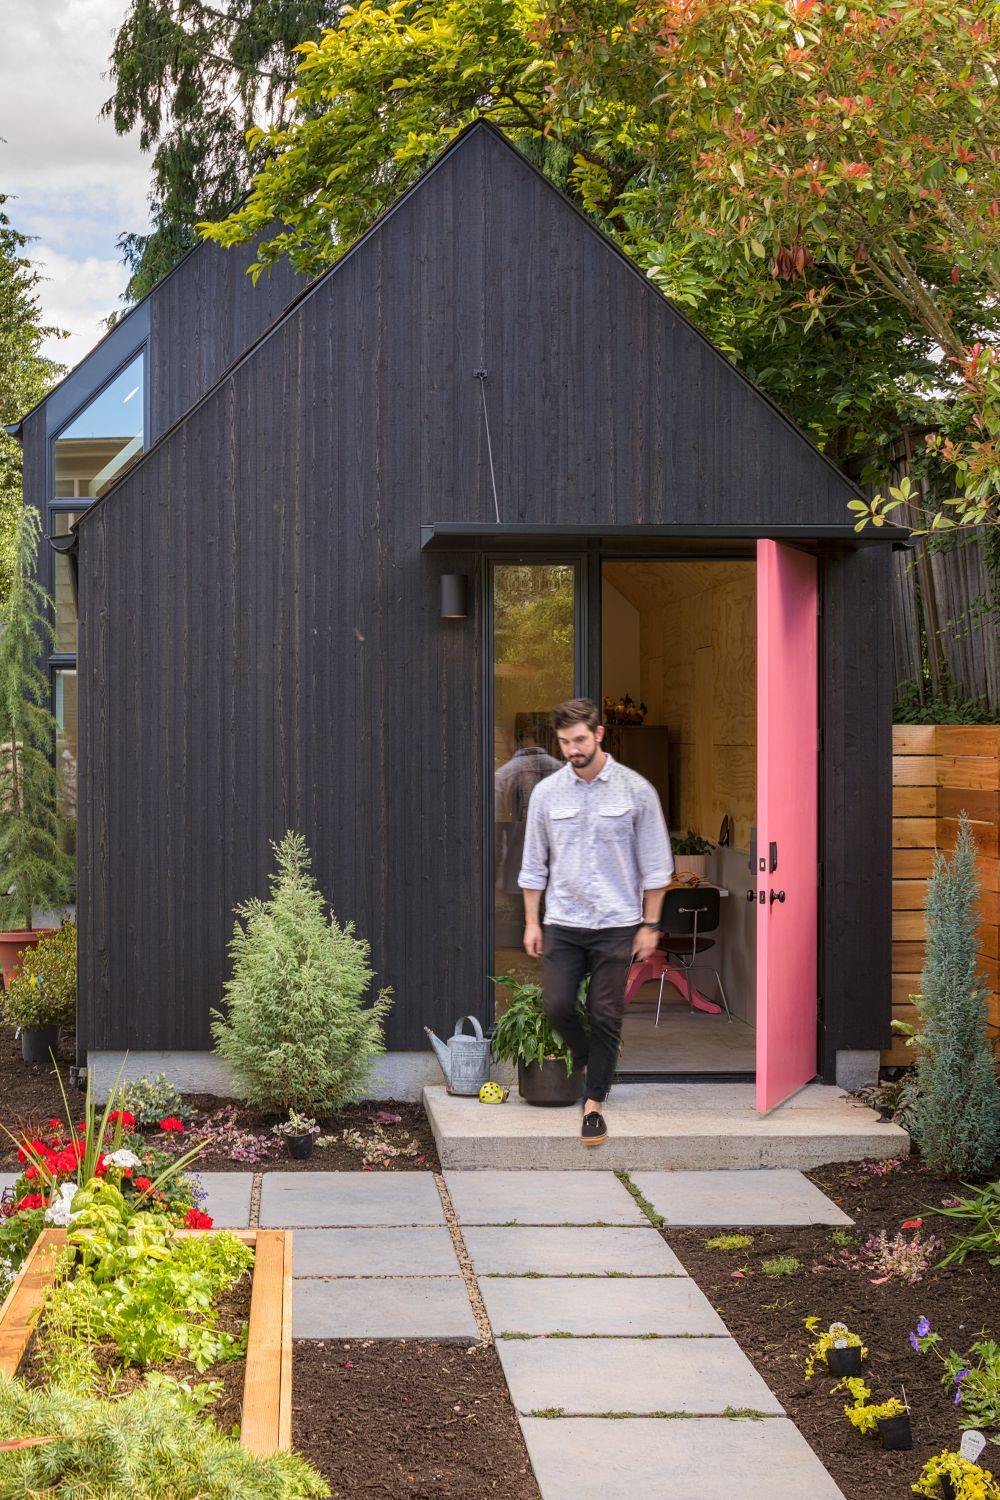 The front door is bring pink and add a quirky touch of color to the design